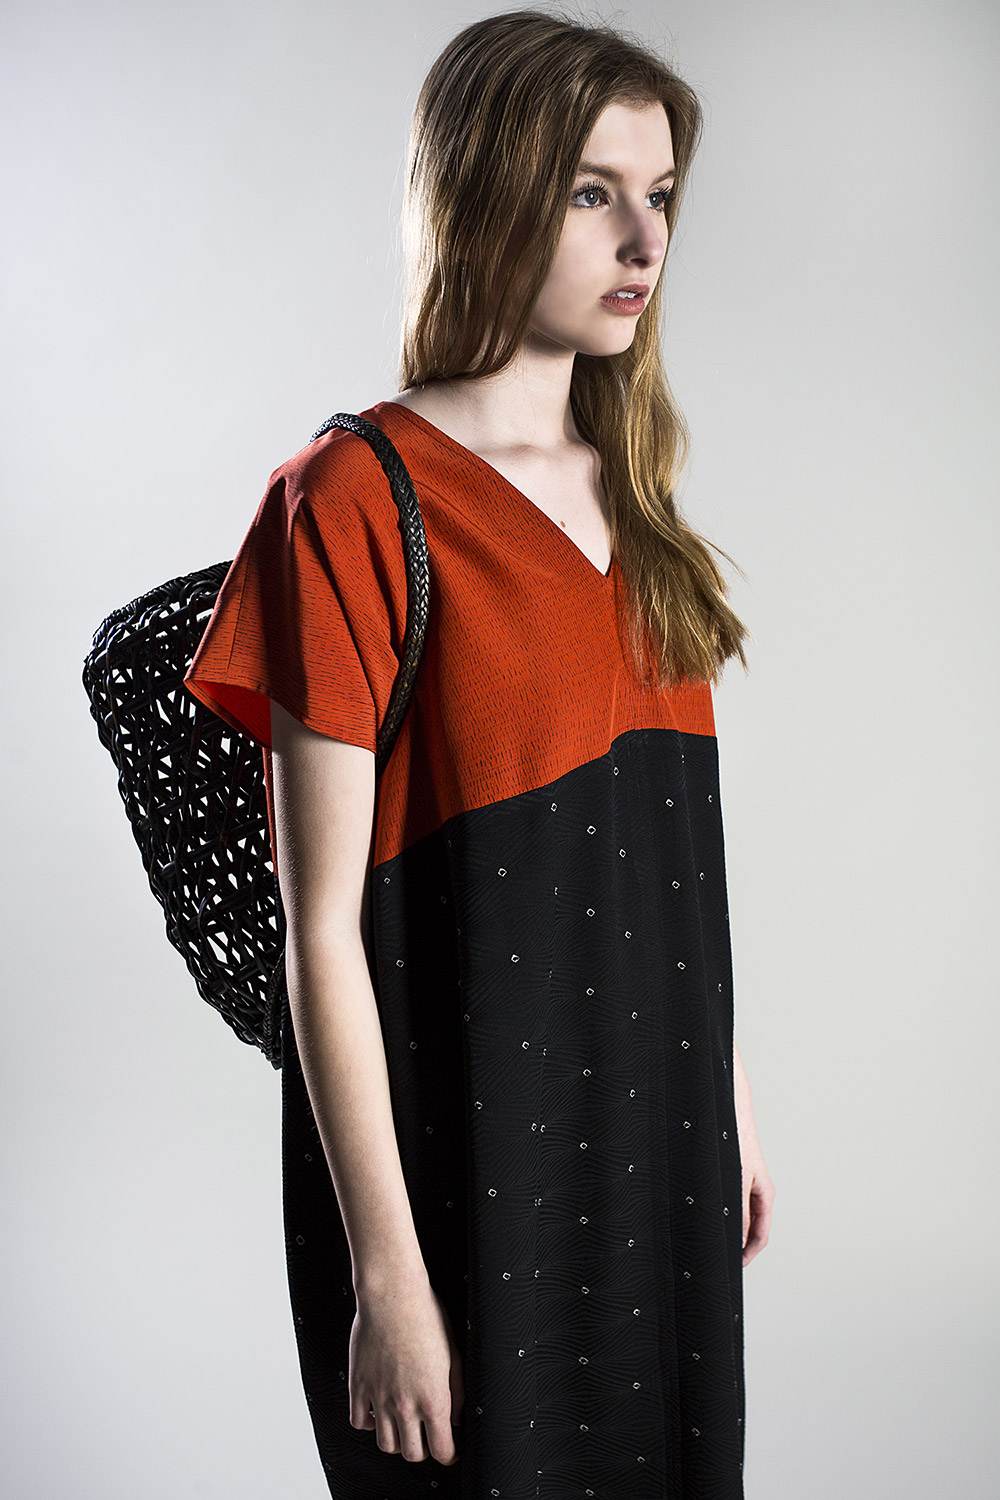 Outfit-13-plus-backpack-4372.jpg